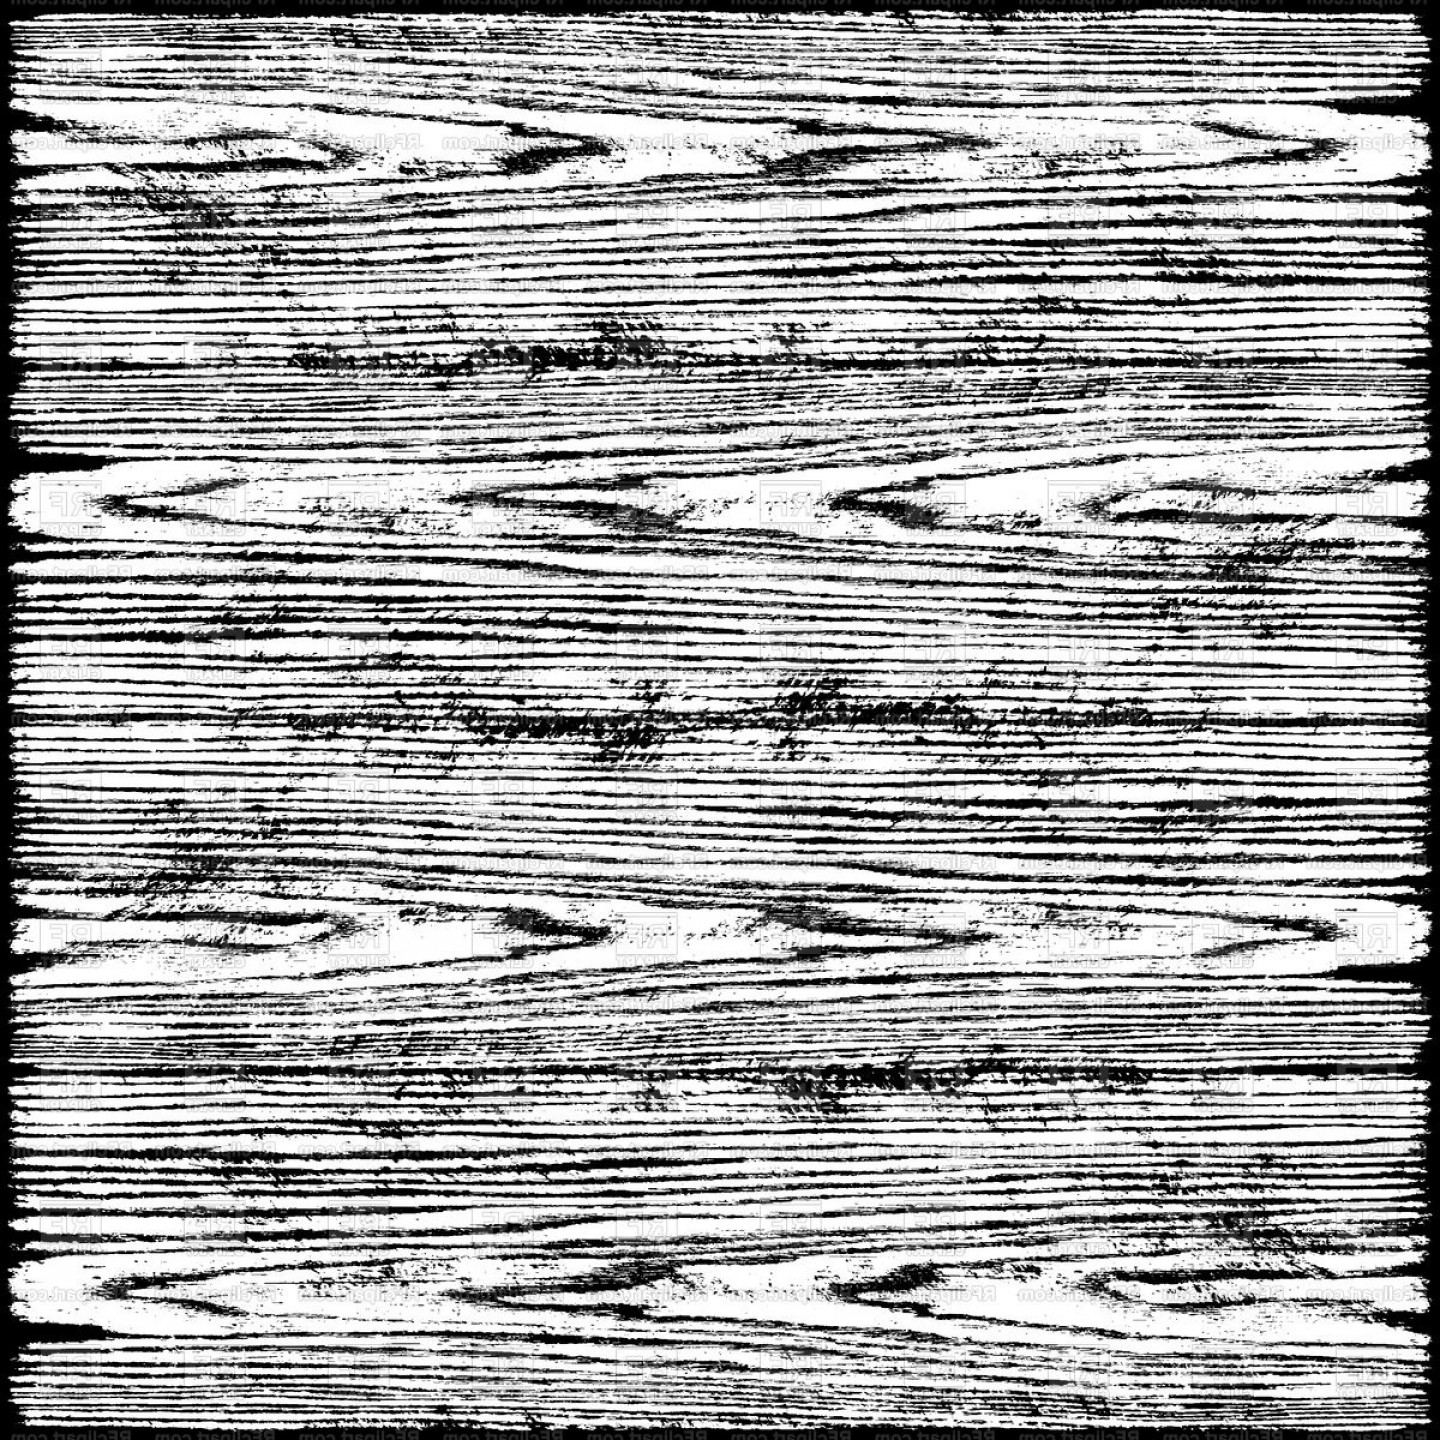 Wood Plank Vector Art: Black And White Wooden Planks Texture Vector Clipart